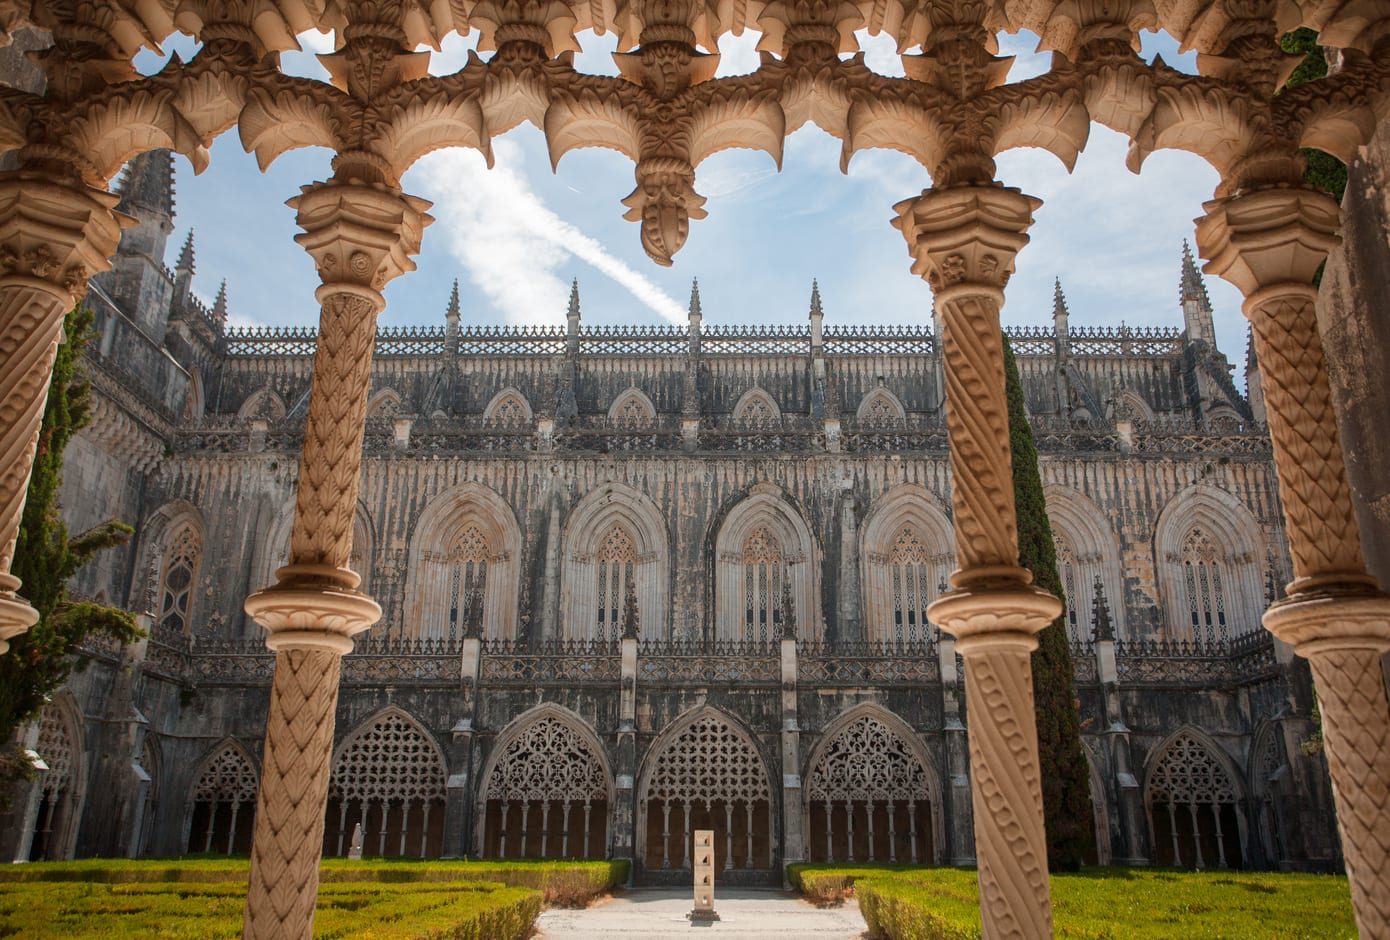 The monastery of Batalha with gothic towers, in Portugal